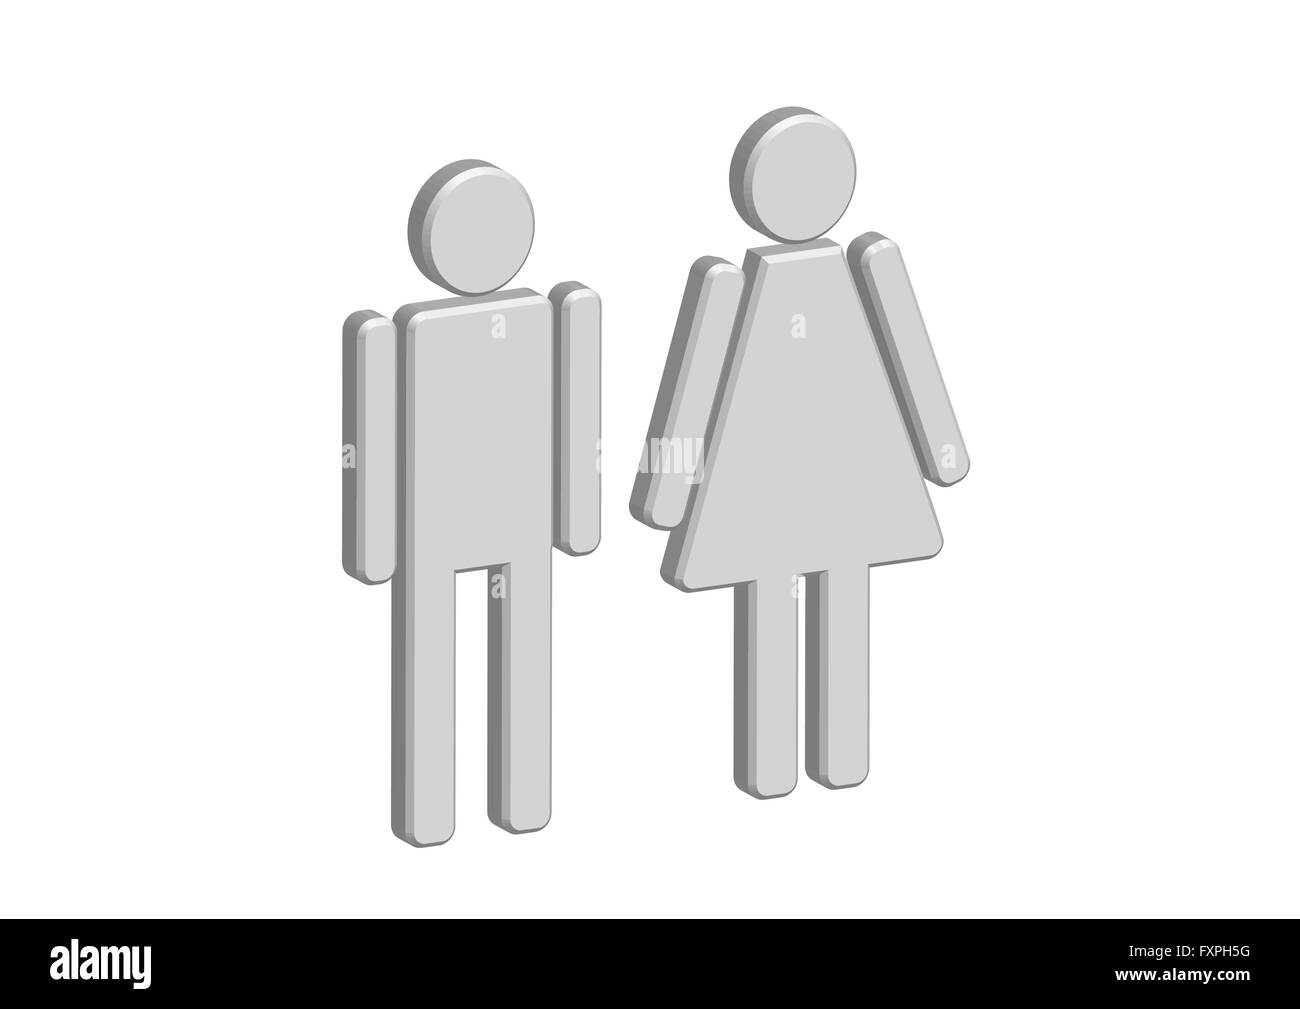 Bathroom Sign Man And Woman 3d pictogram man woman sign icons, toilet sign or restroom icon